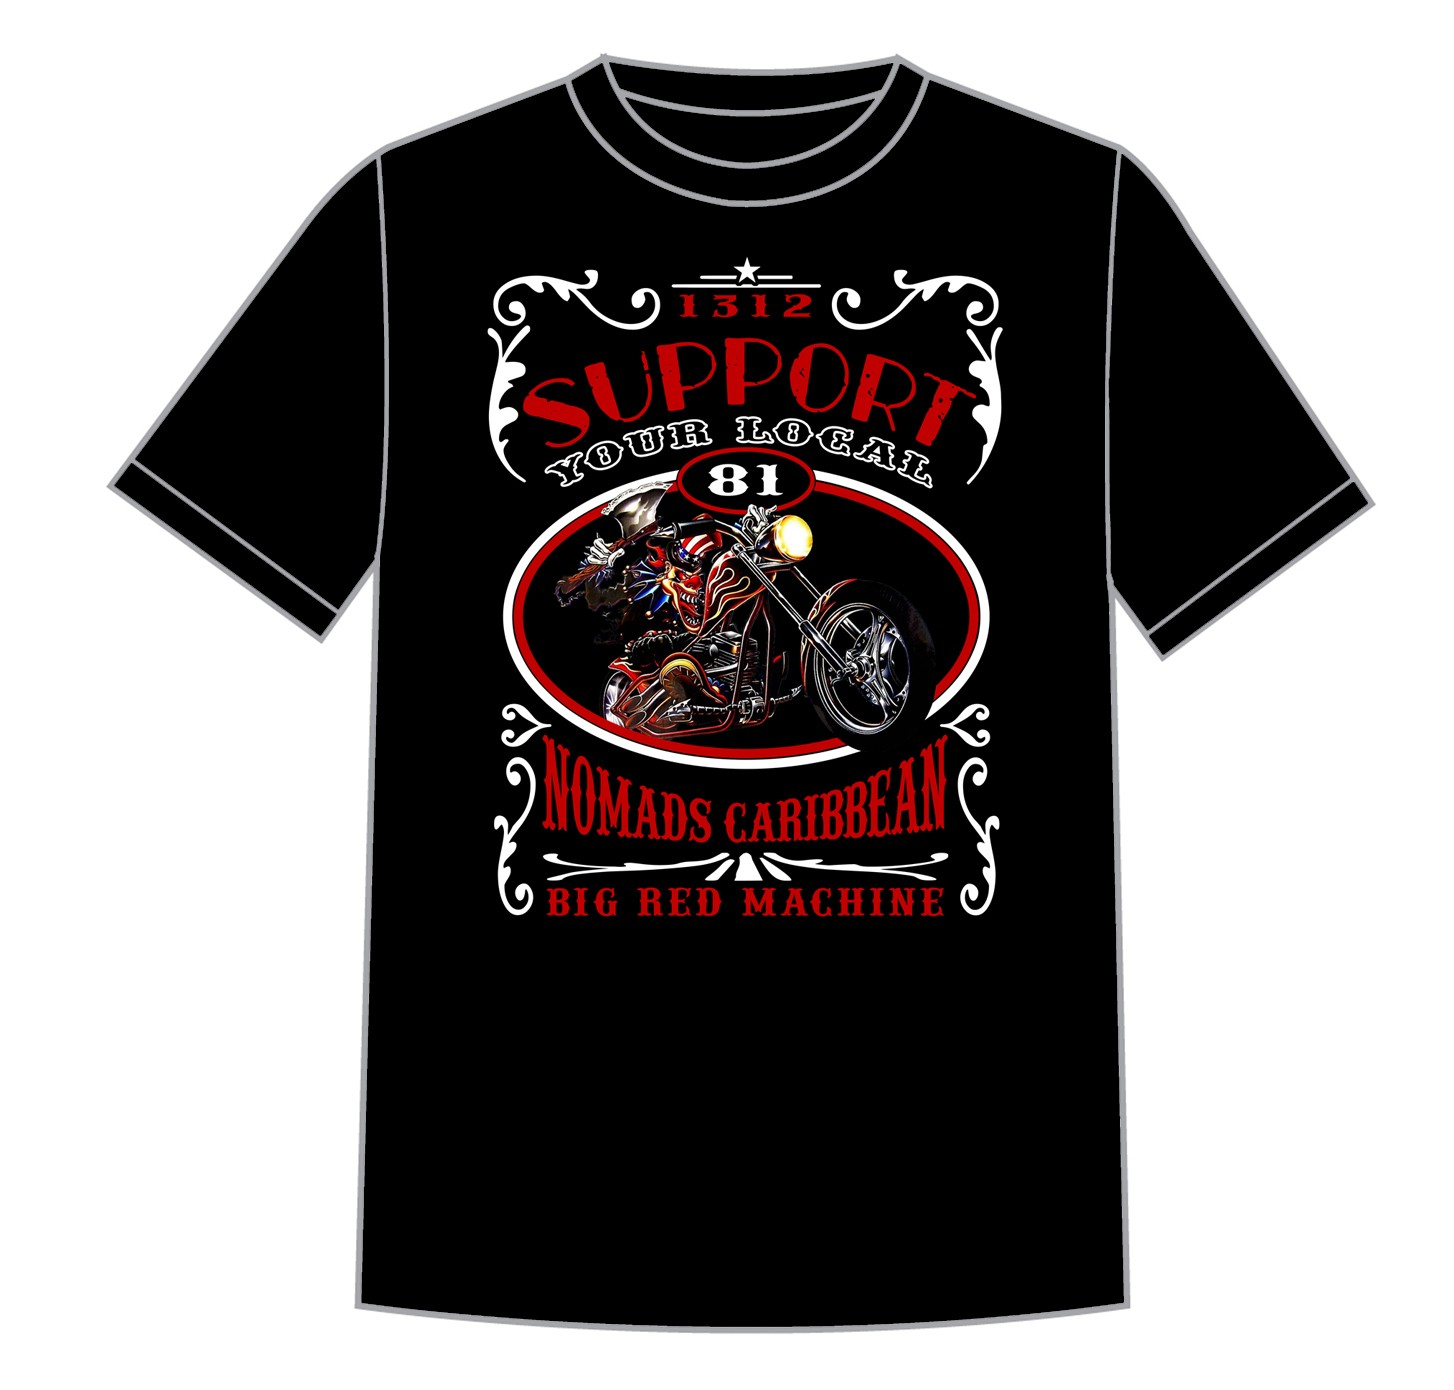 Details about 01 Hells Angels Nomads Caribbean T Shirt model 7 black